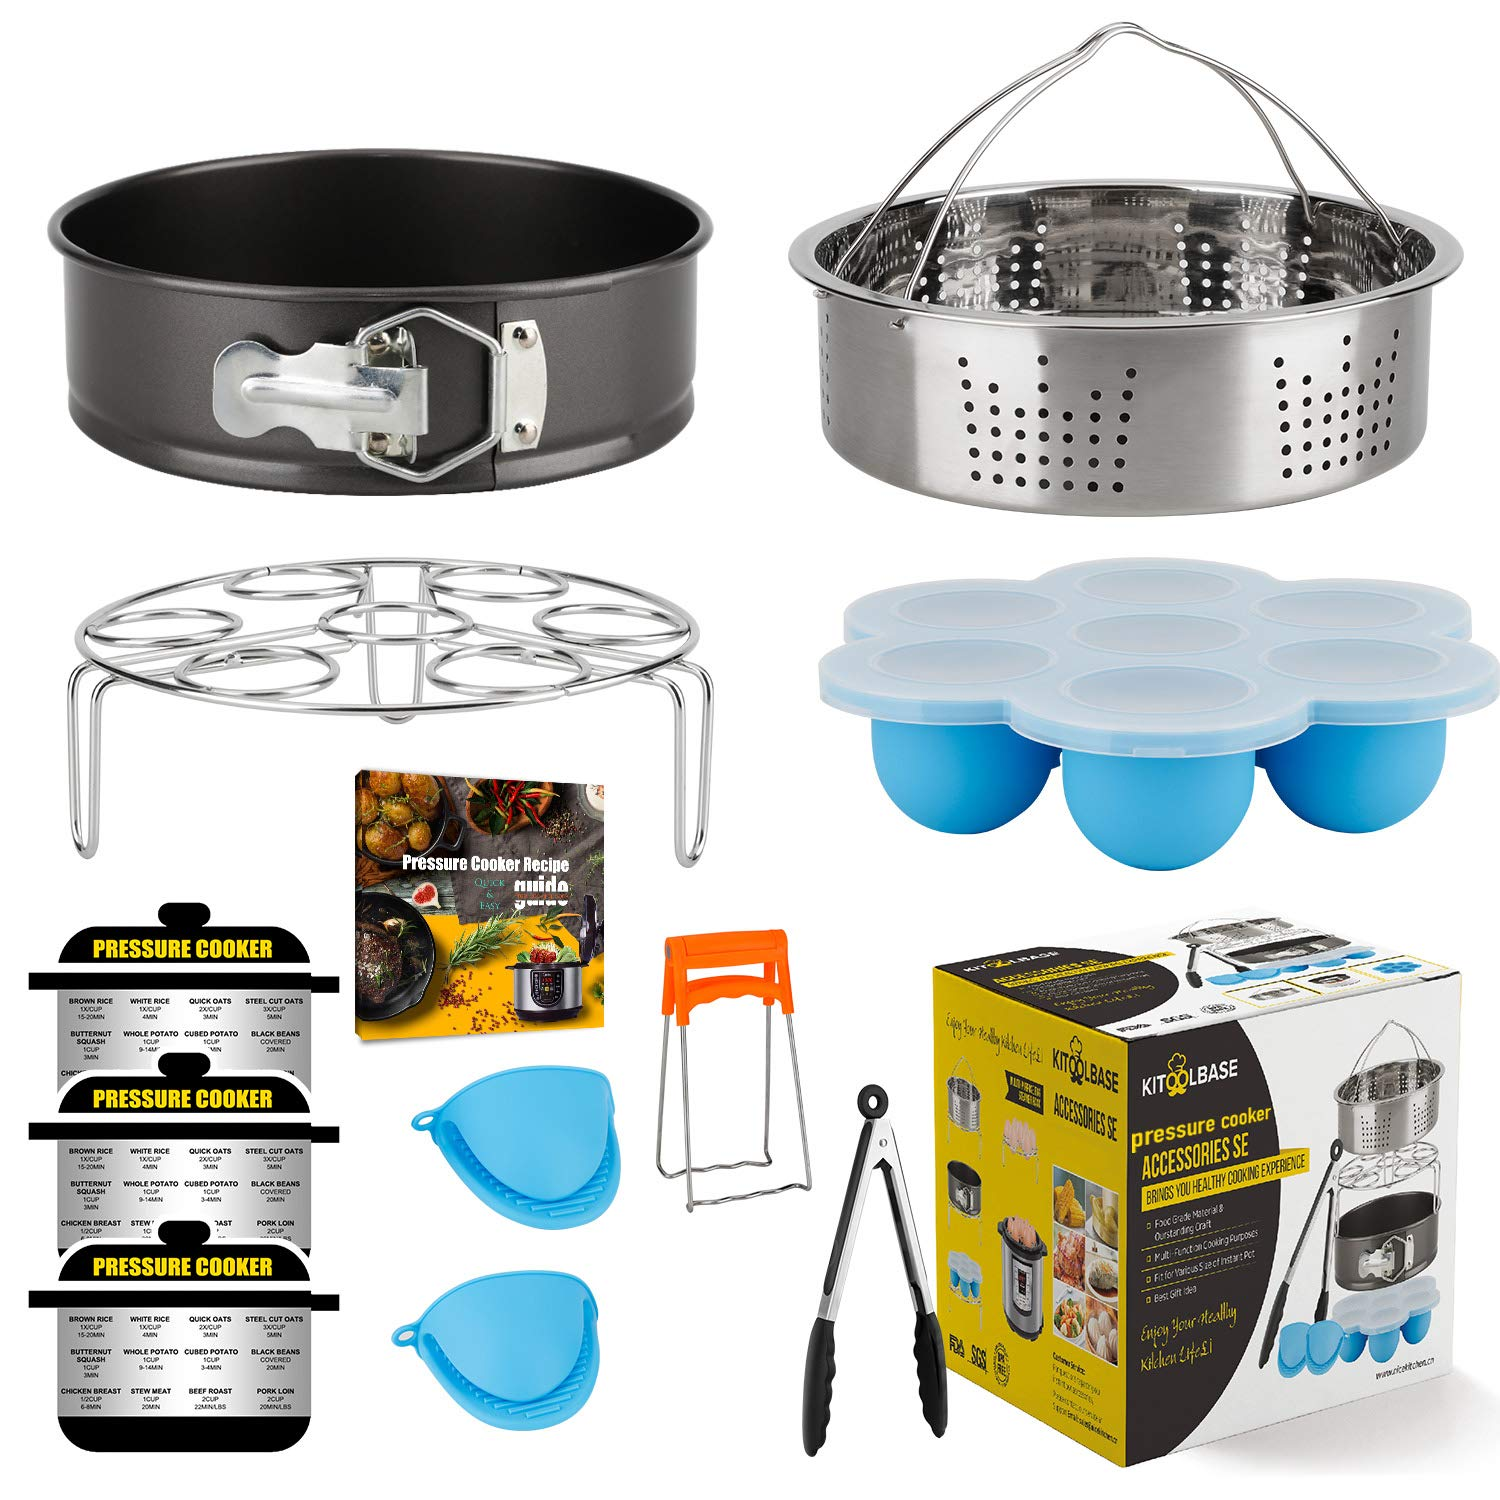 Insta-Pot-Accessories-Set, Instapot Accessory Compatible with Instant Pot 6 Qt 8 Quart, with Steamer Basket Cheesecake Pan Egg Steam Trivet Silicone Mold Mitts Tong, Made of 18/10 Stainless Steel by KITOOLBASE